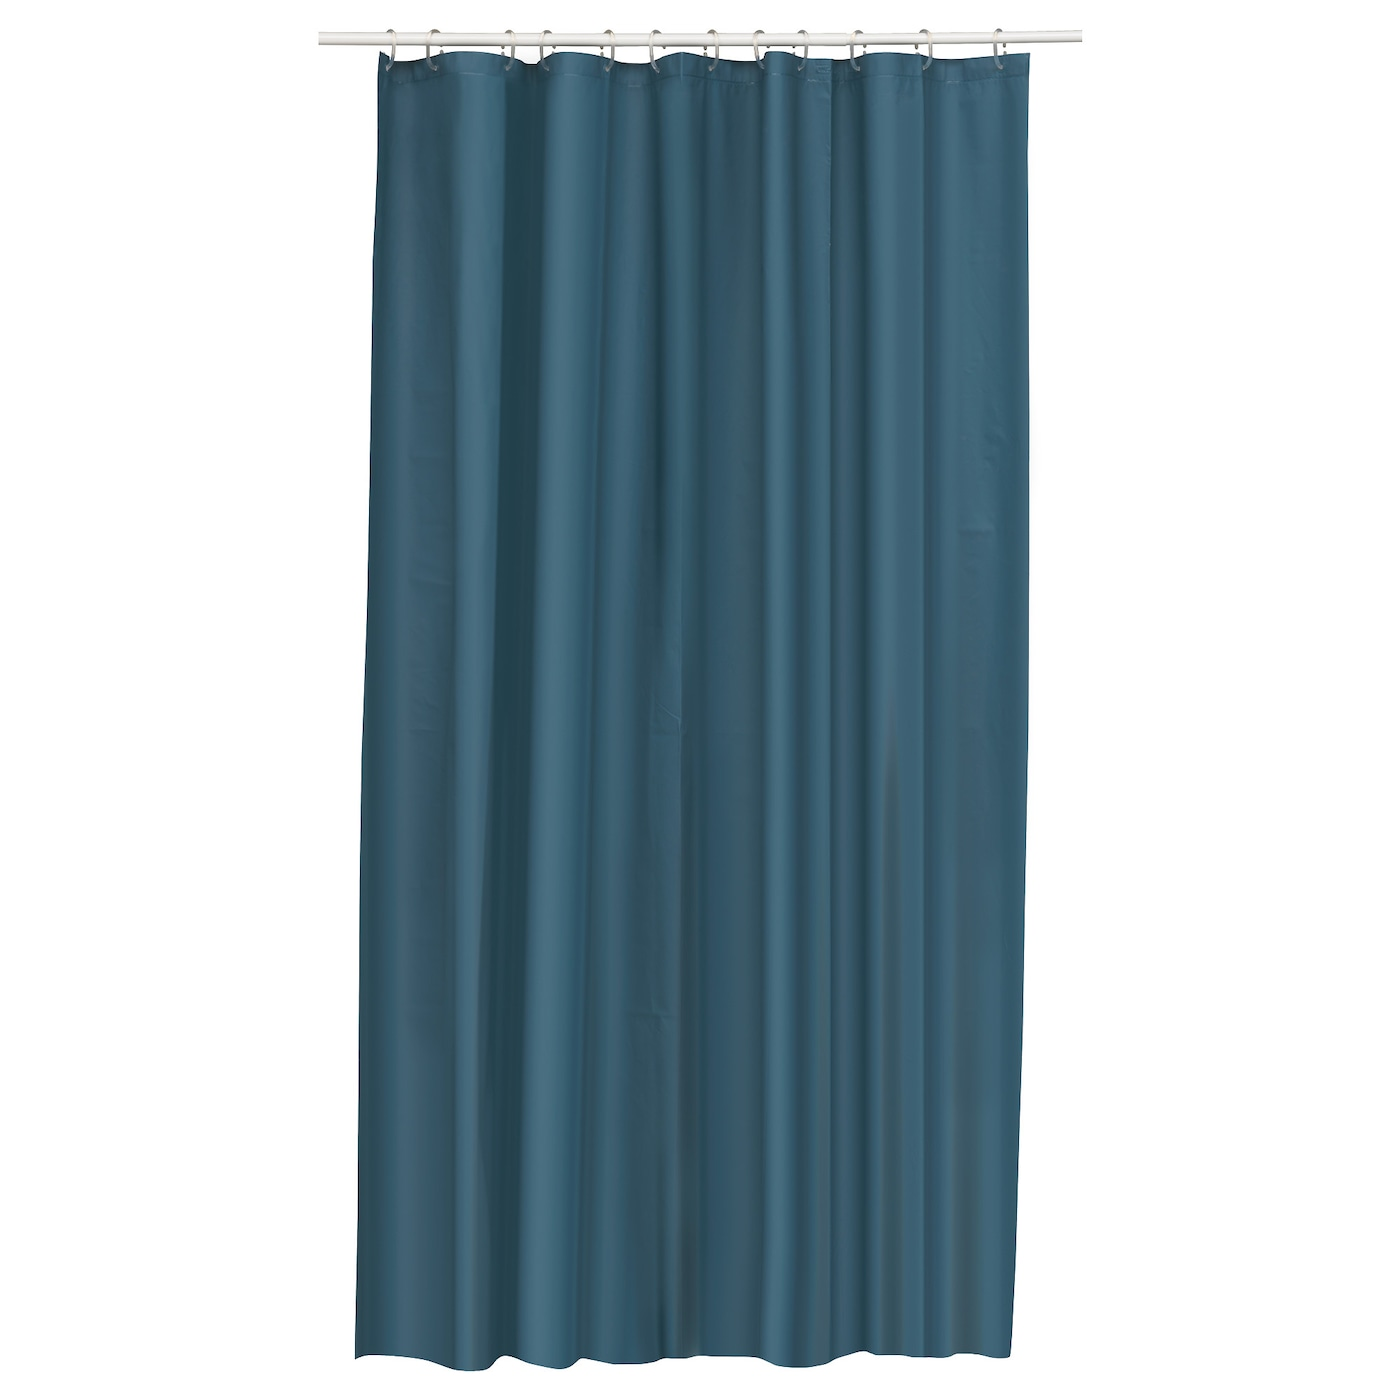 EGGEGRUND Shower Curtain Green Blue 180x180 Cm